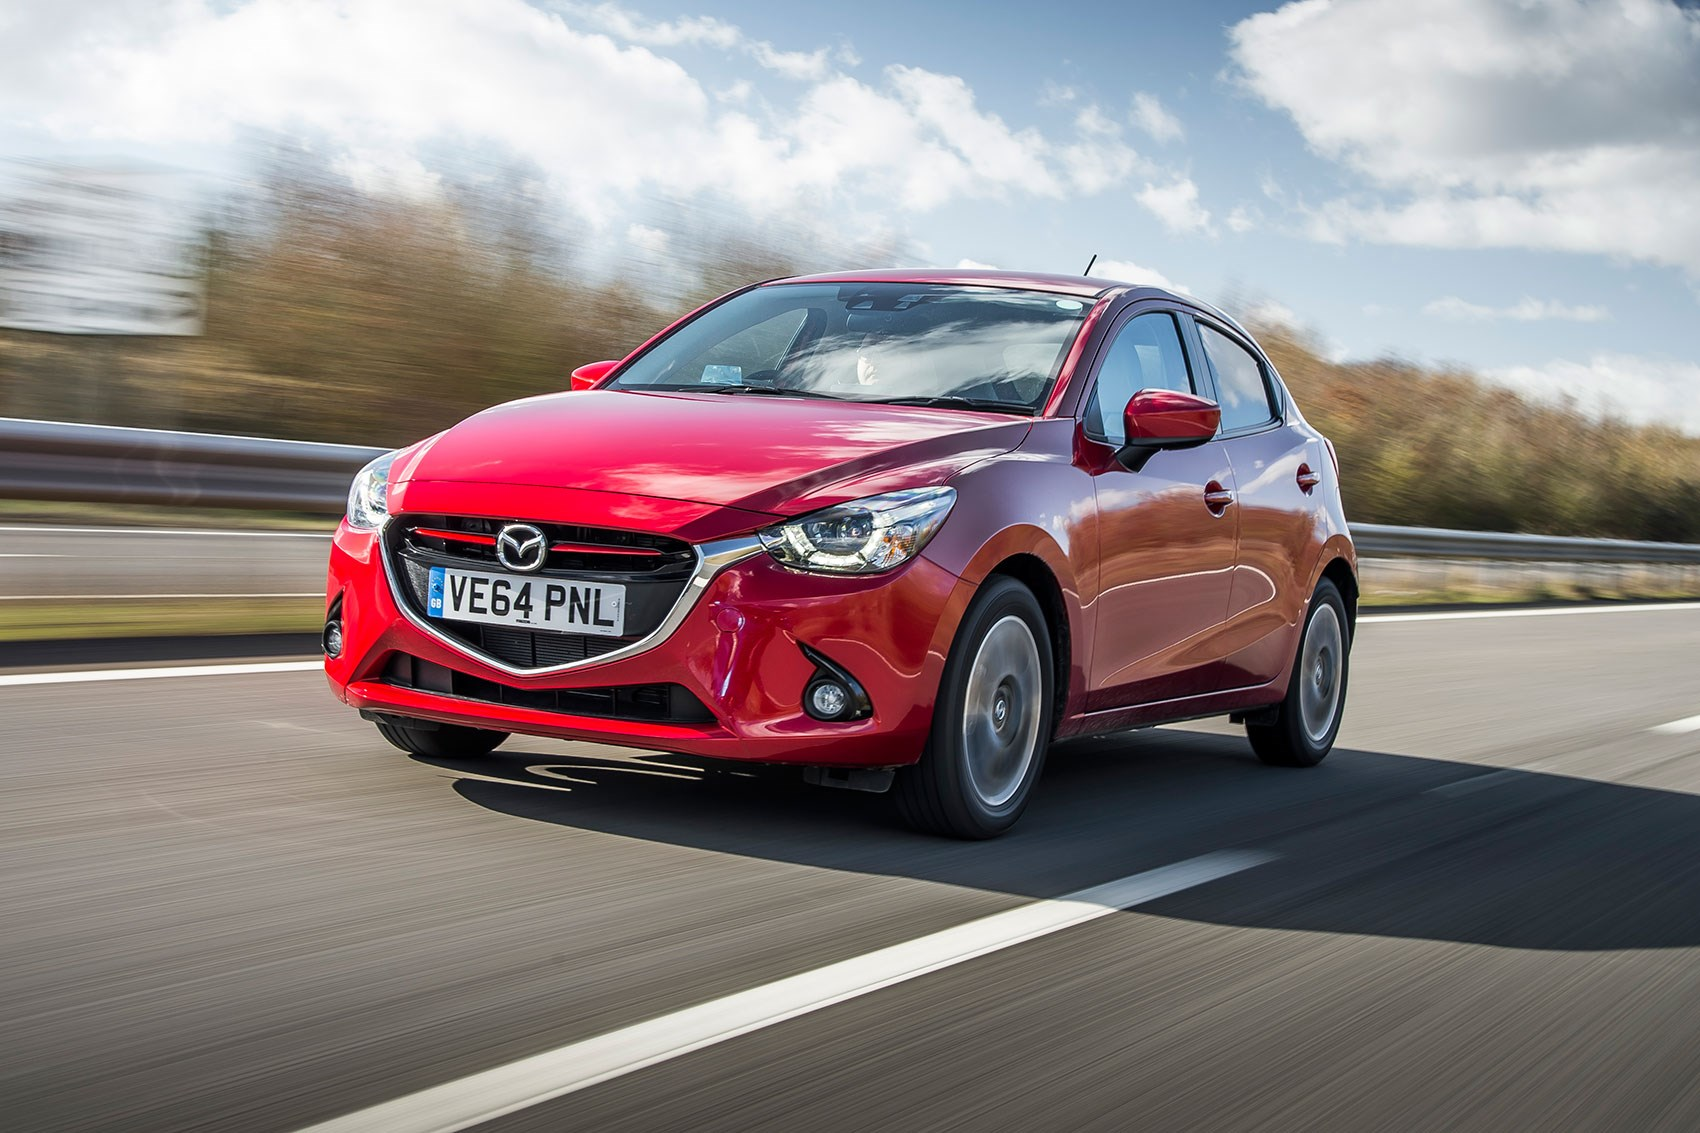 https://car-images.bauersecure.com/pagefiles/12761/mazda2_01.jpg